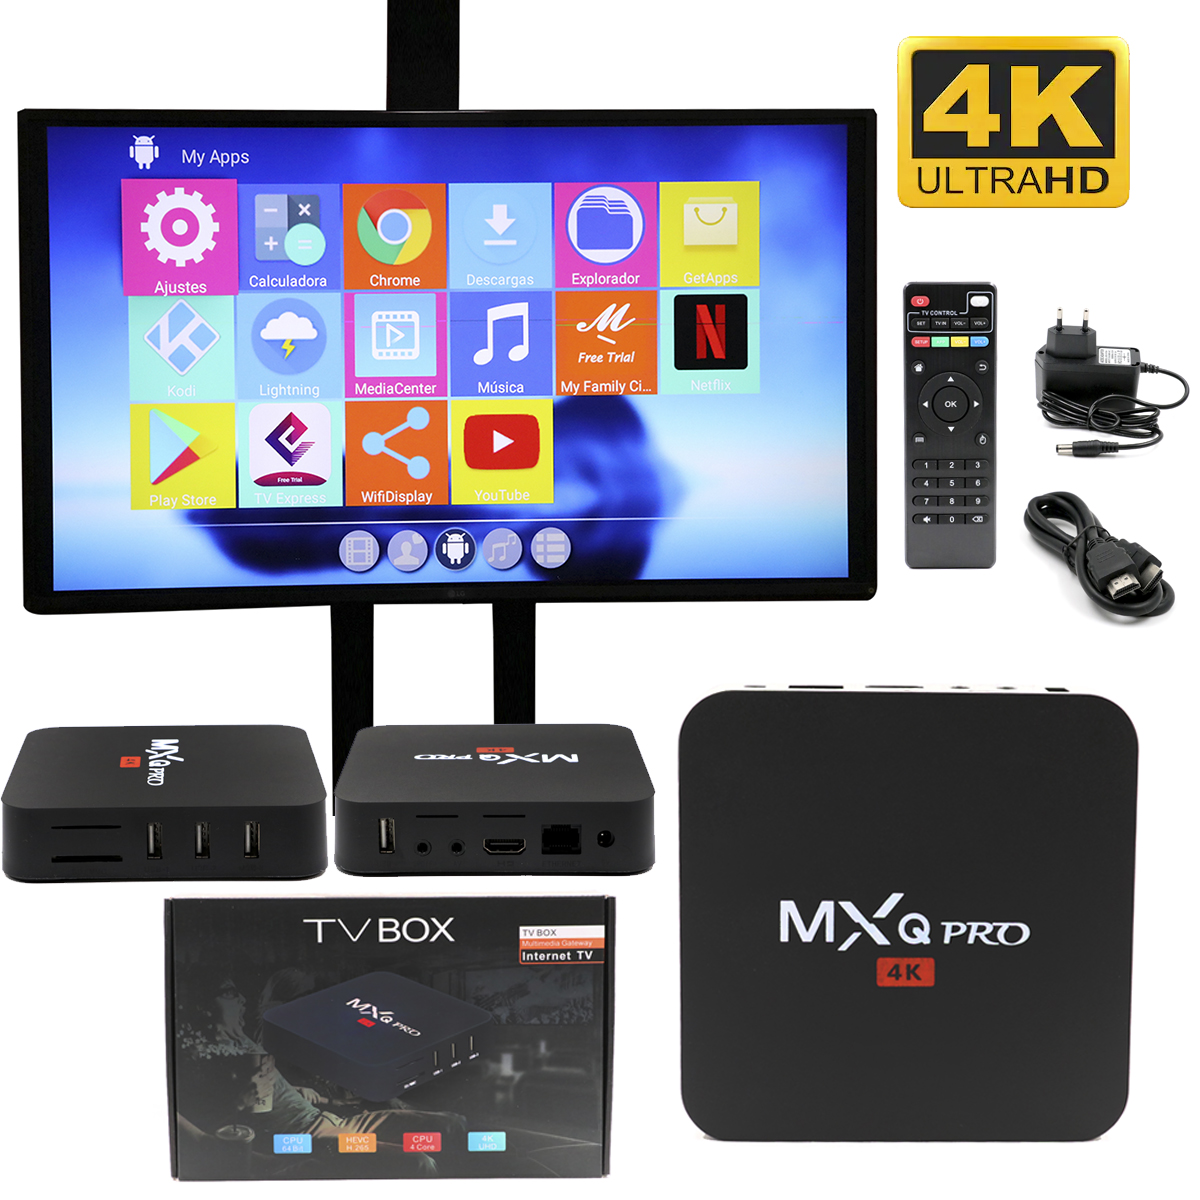 Best Kodi Box For Unlimited Streaming